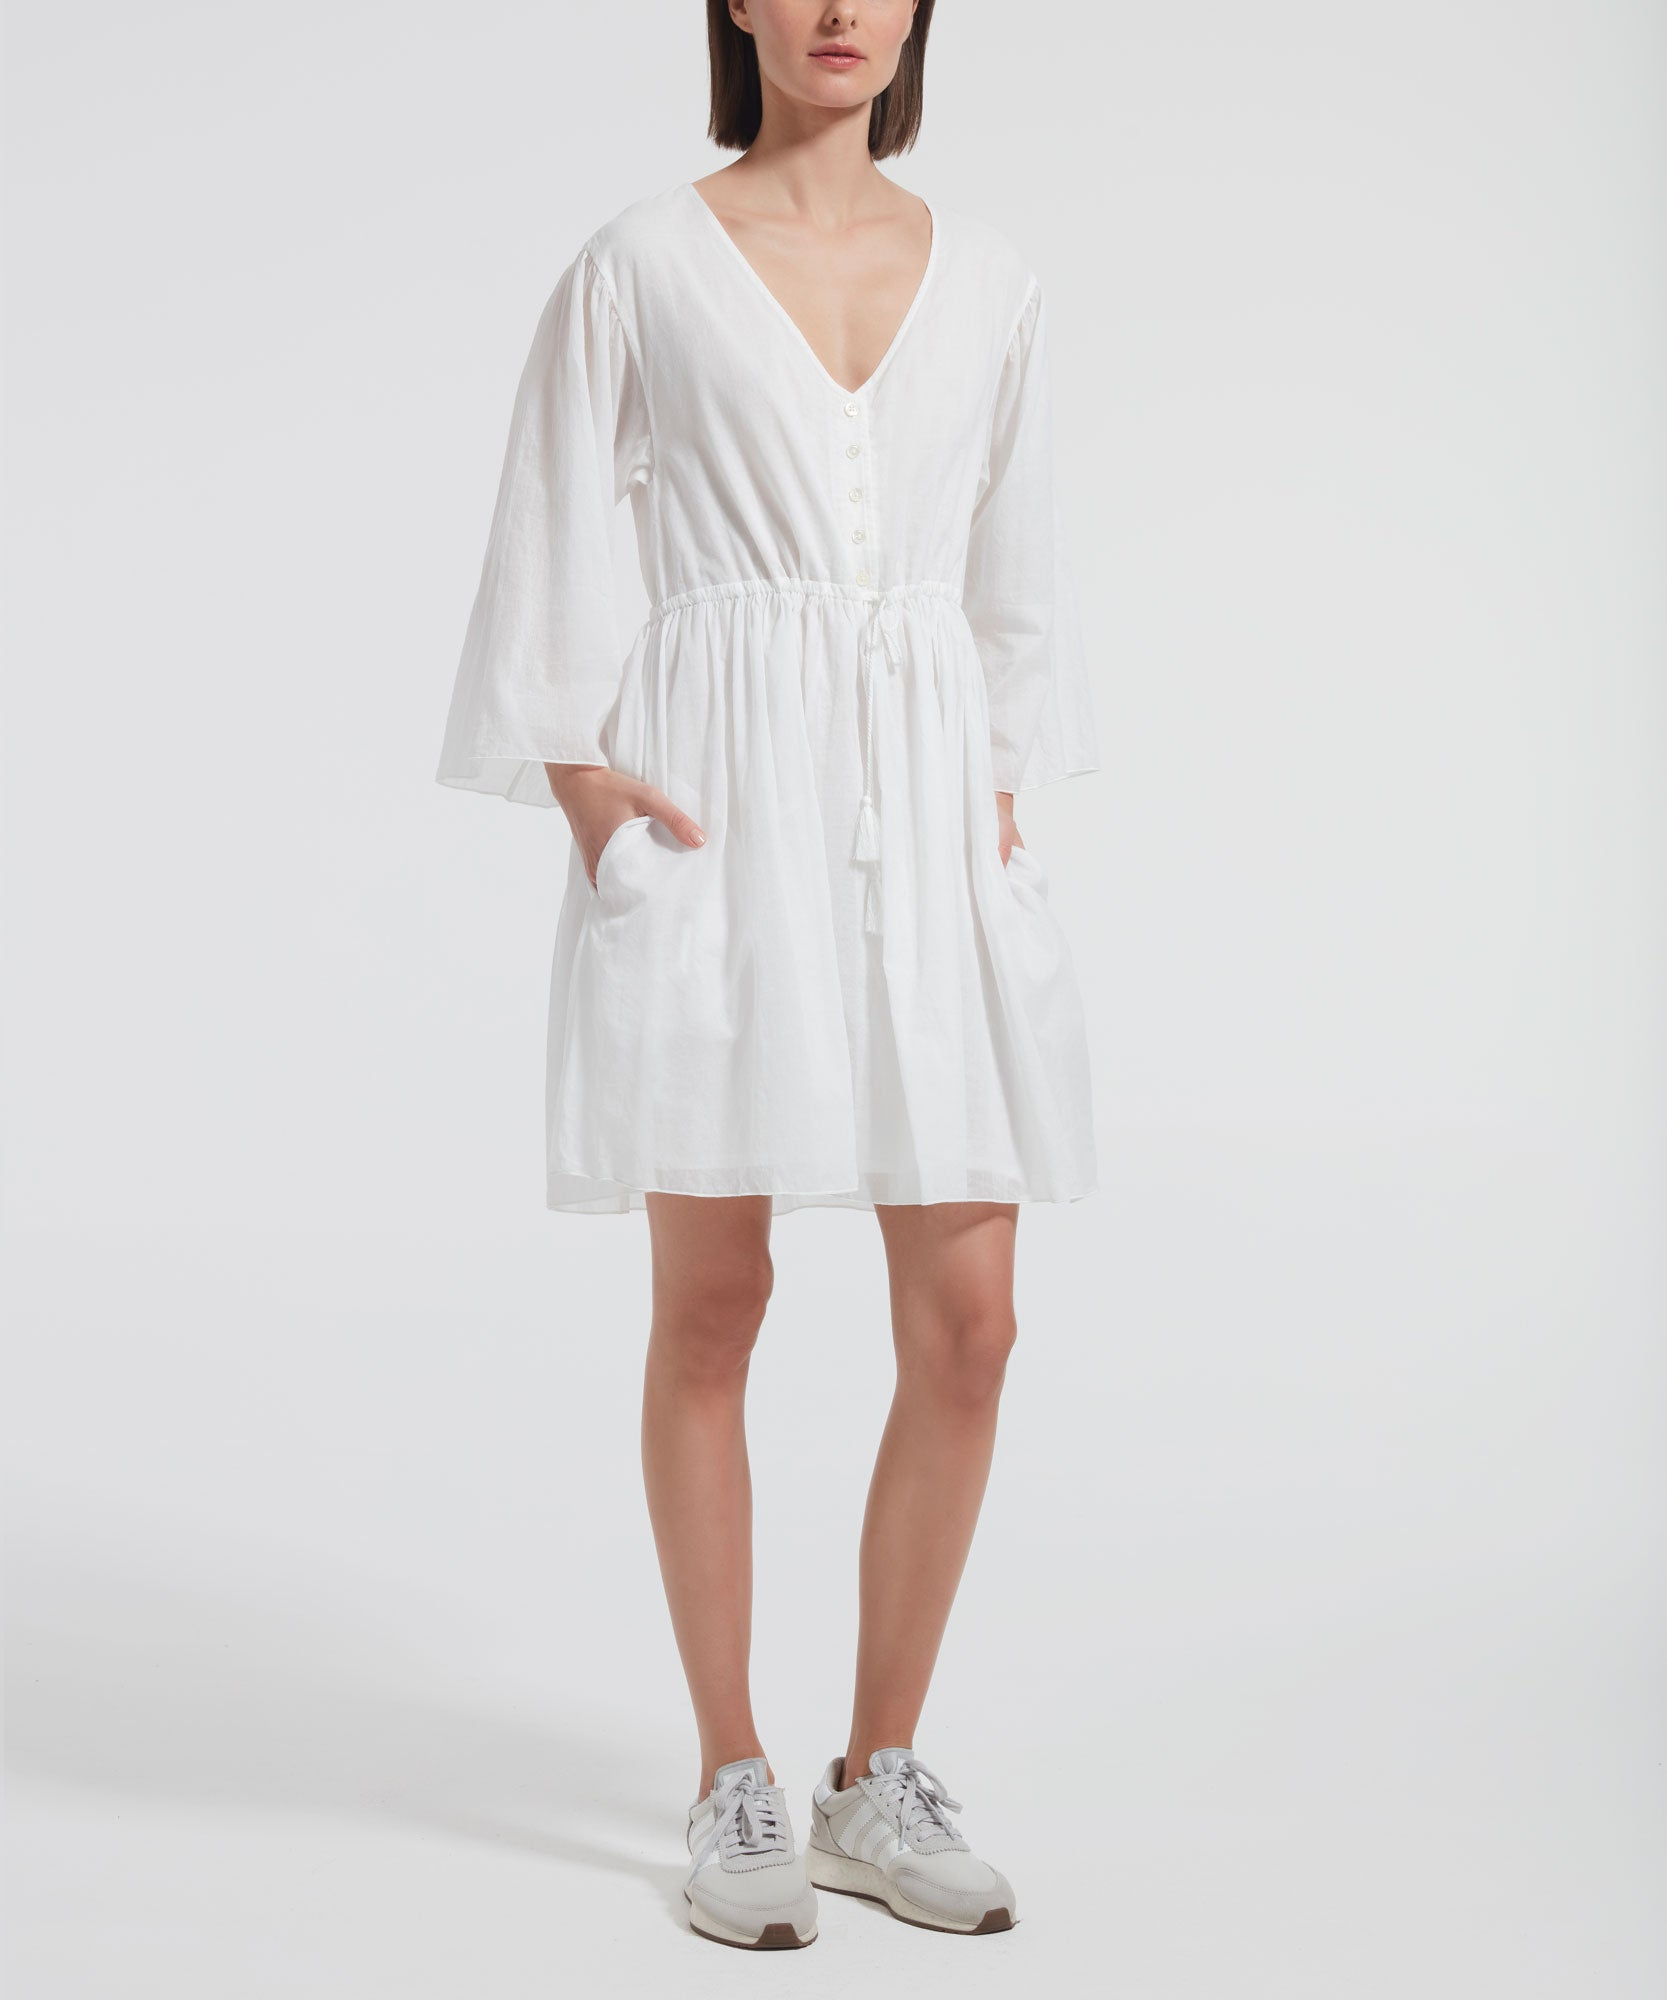 White Crinkle Cotton Long Sleeve V-Neck Dress - Women's Dress by ATM Anthony Thomas Melillo